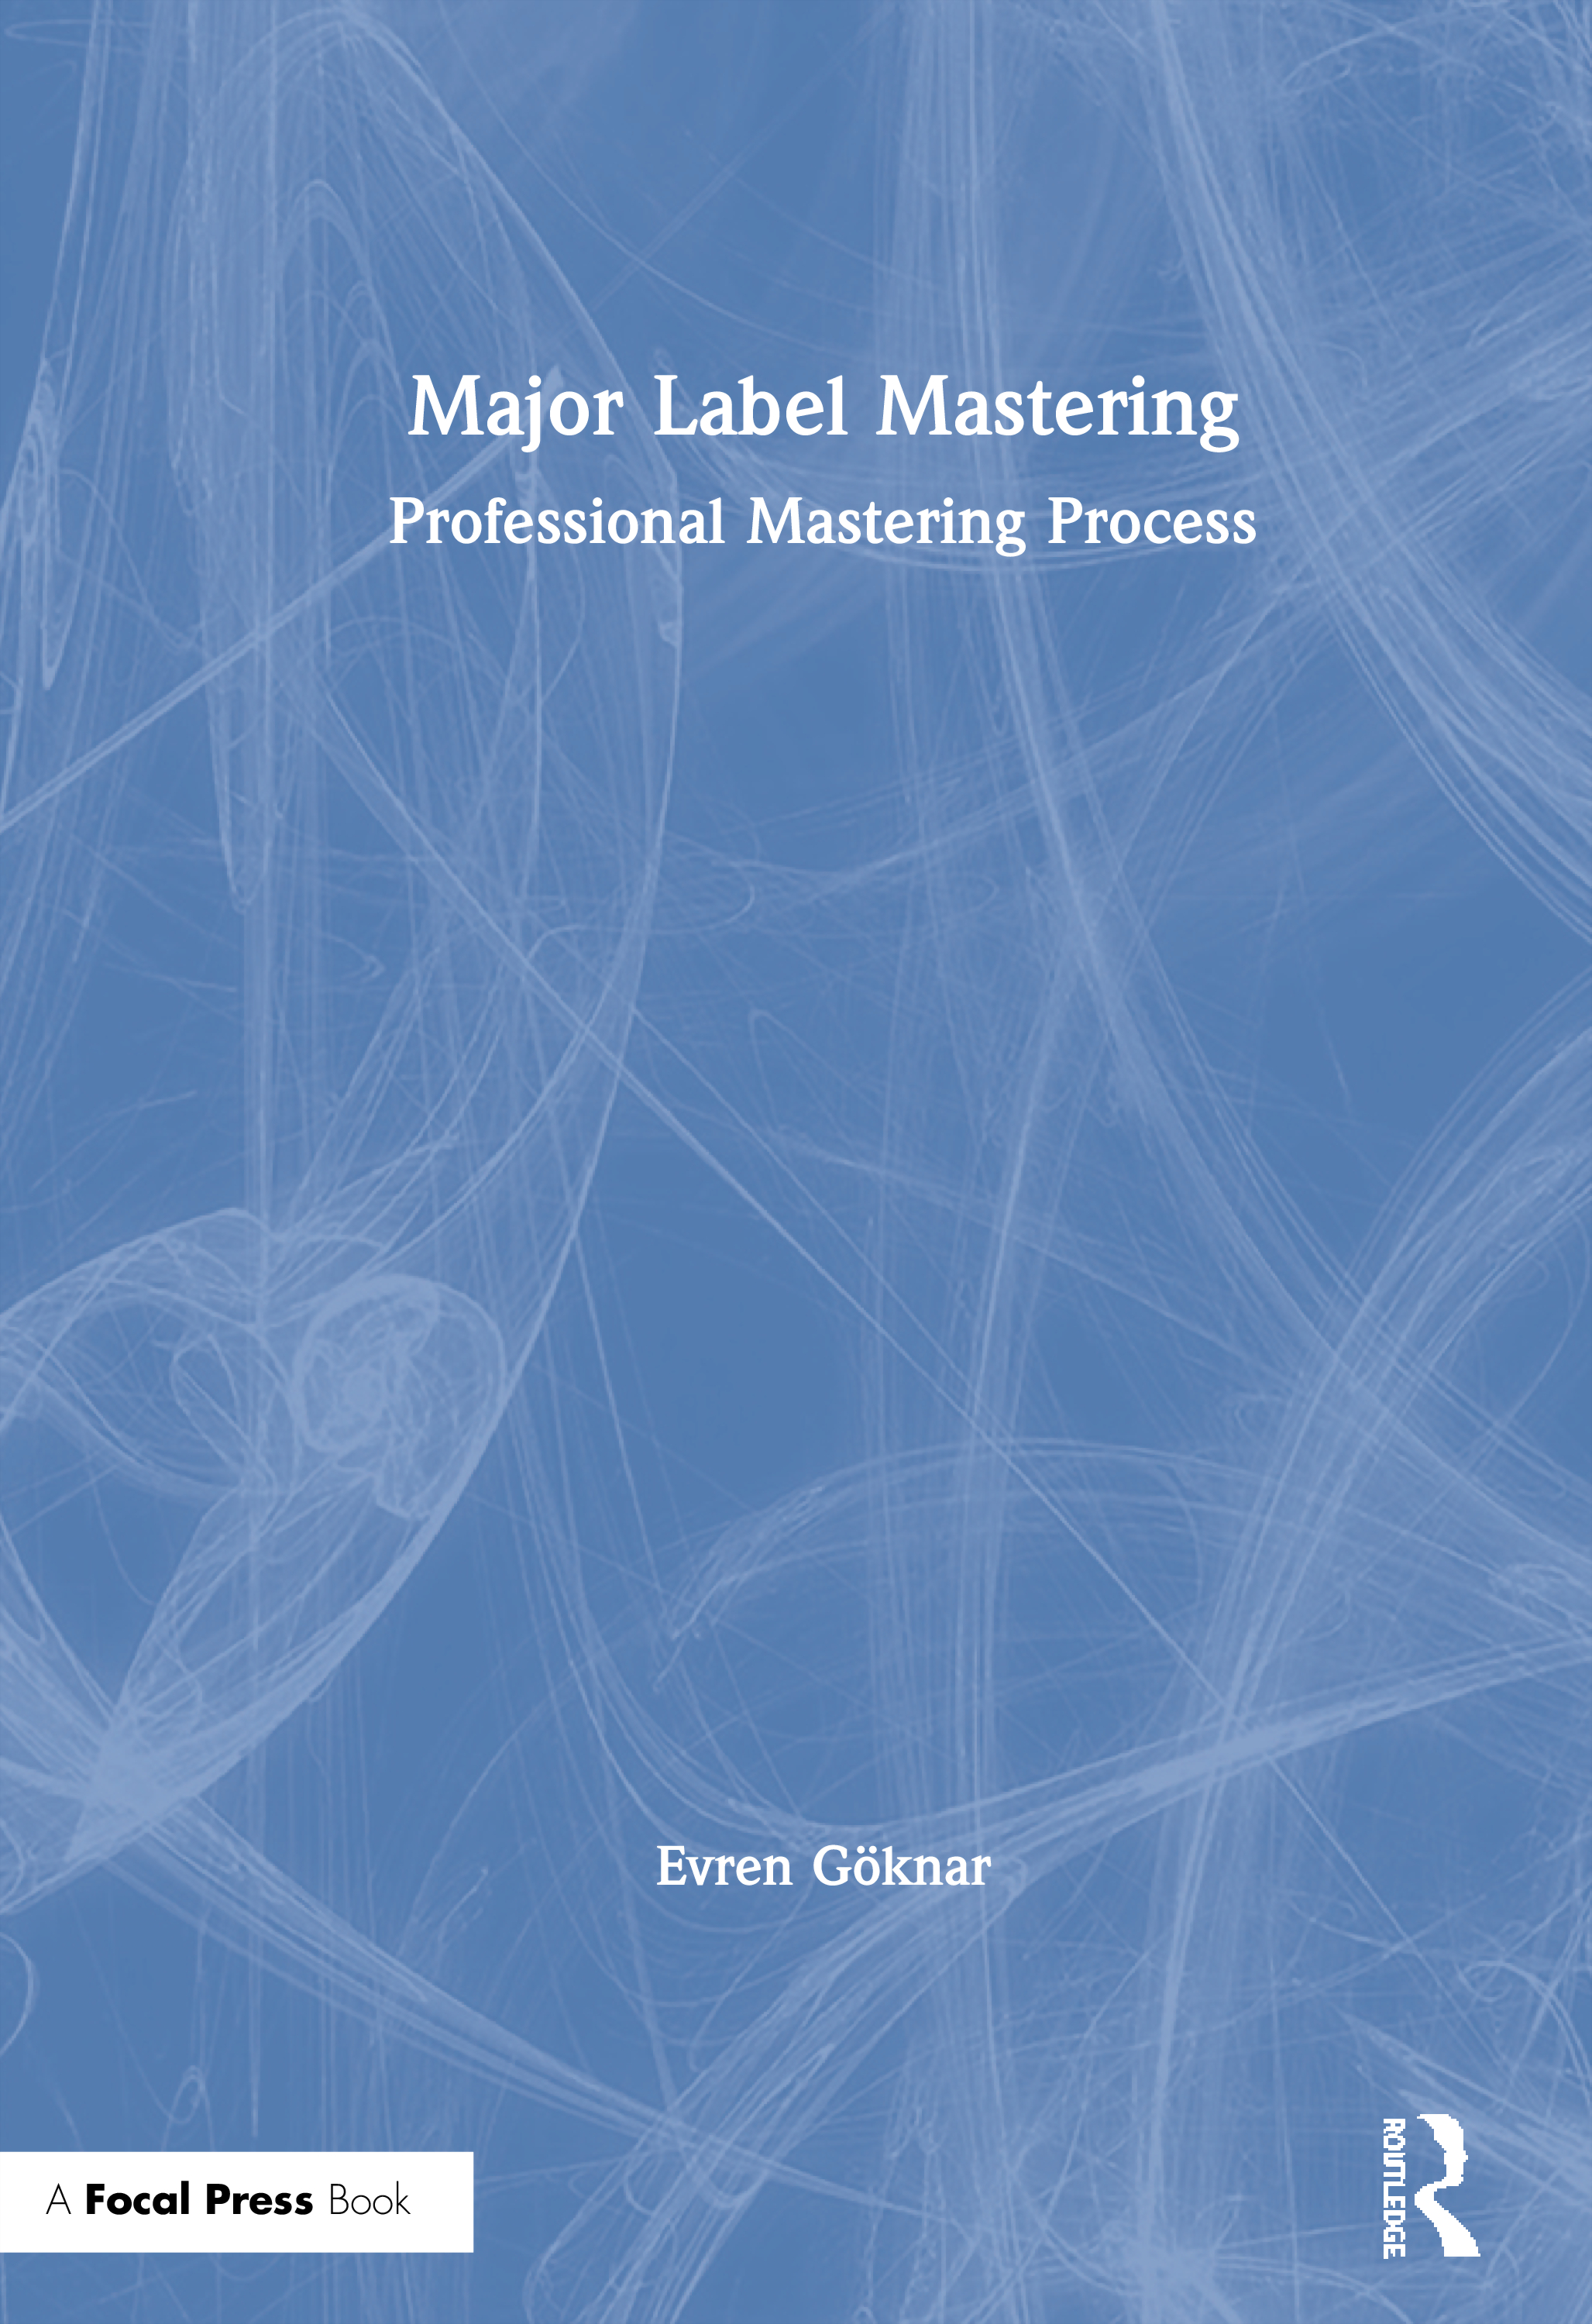 Major Label Mastering: Professional Mastering Process book cover